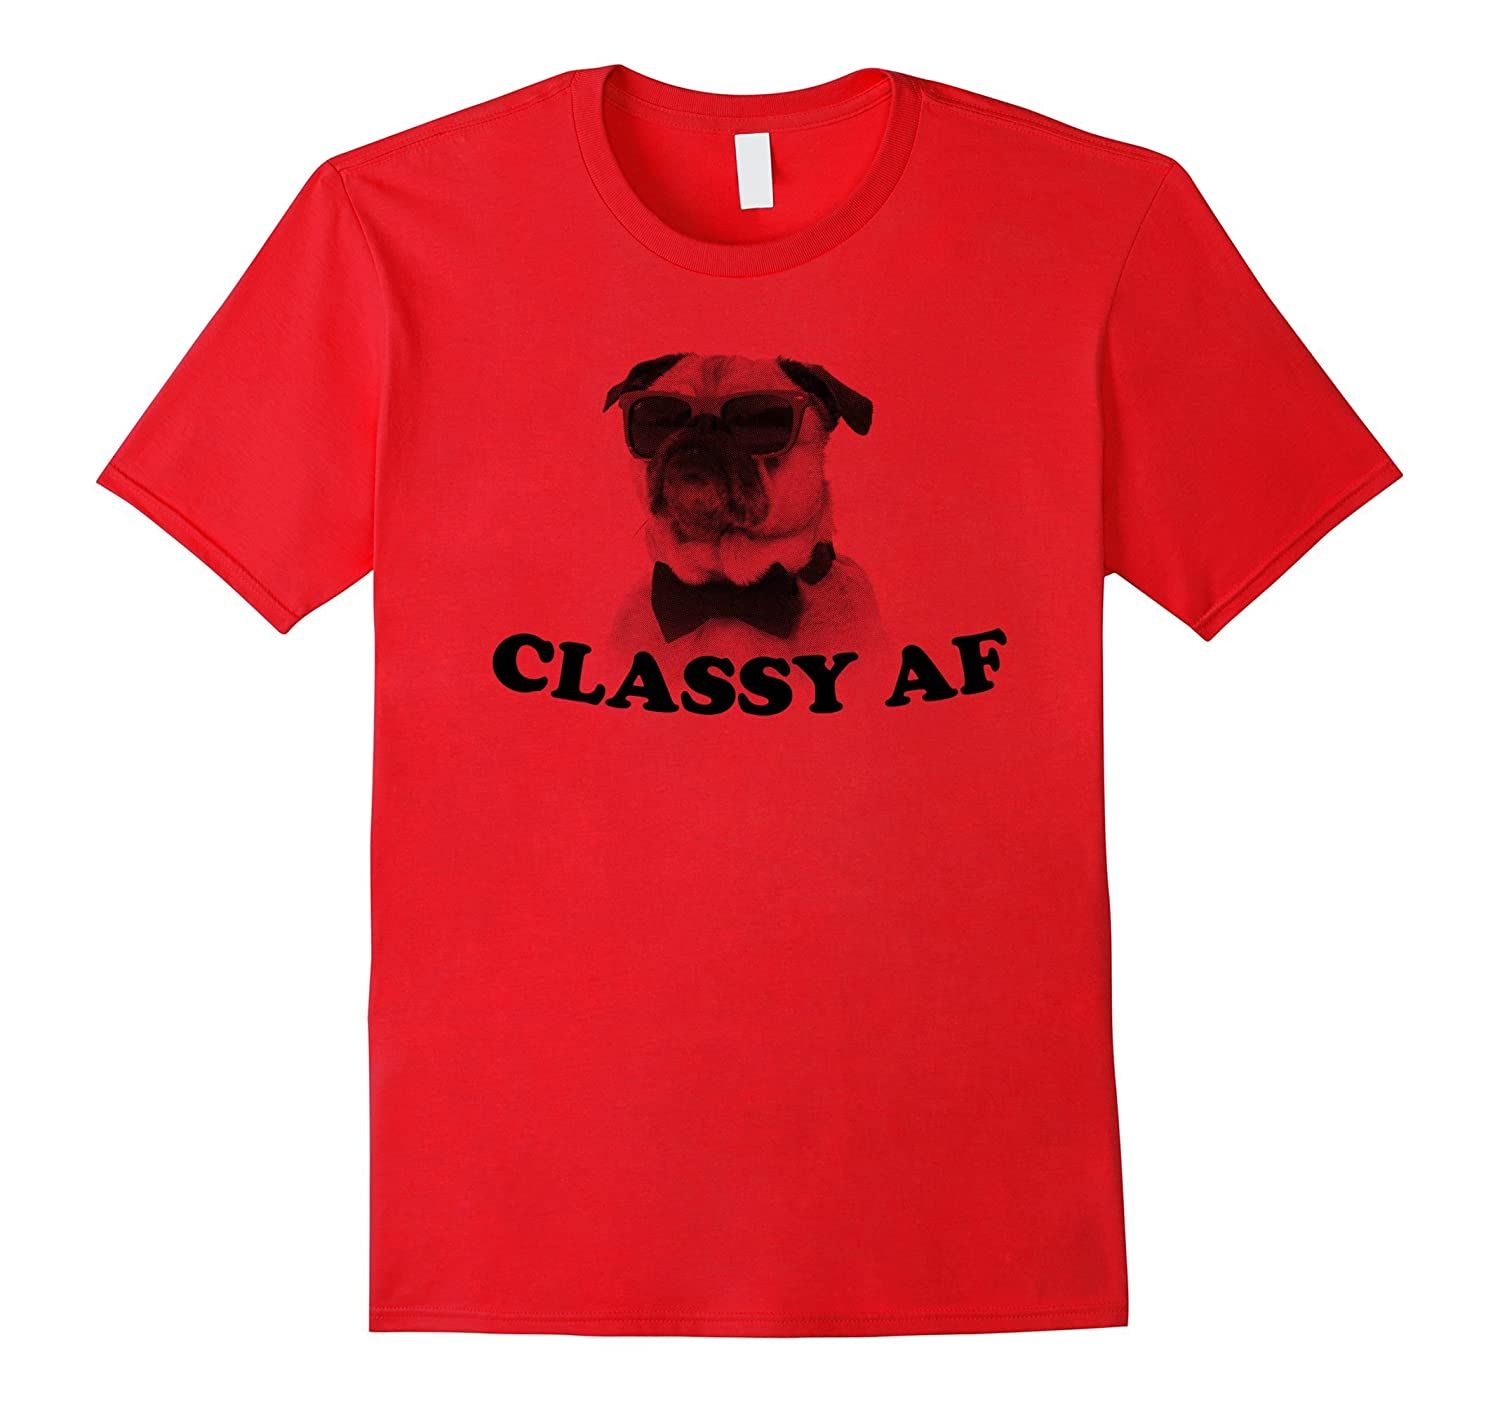 Classy AF Funny Sunglasses Bowtie Pug Graphic Tee-AZP